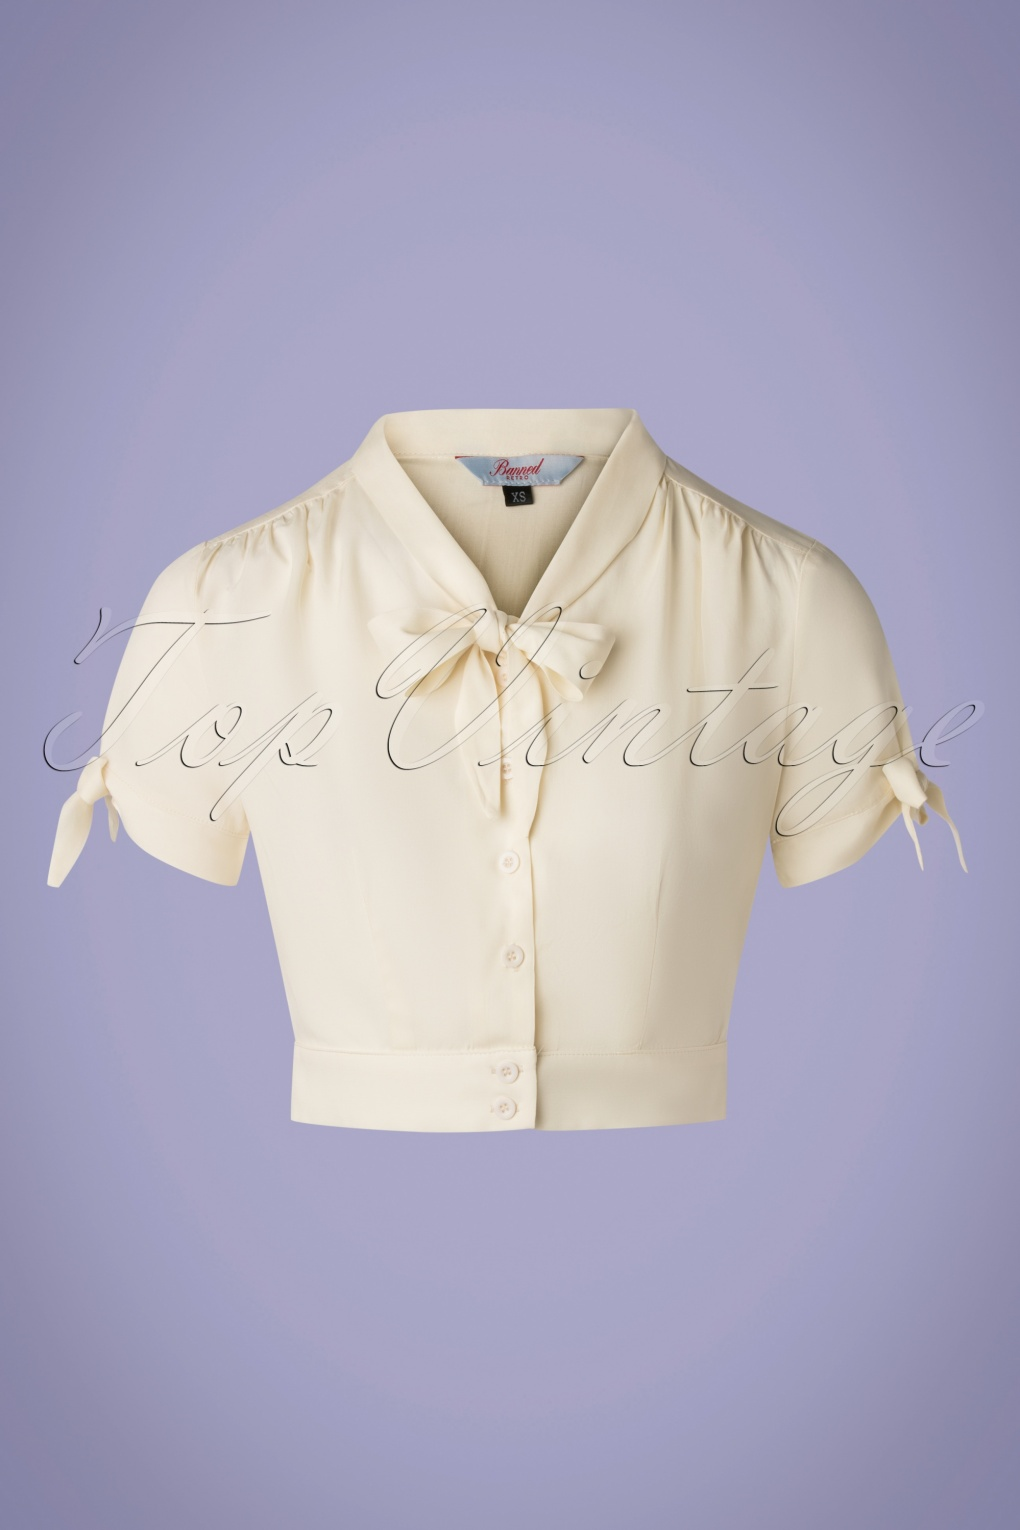 1950s Rockabilly & Pin Up Tops, Blouses, Shirts 50s Pussy Crop Top in Cream £27.99 AT vintagedancer.com